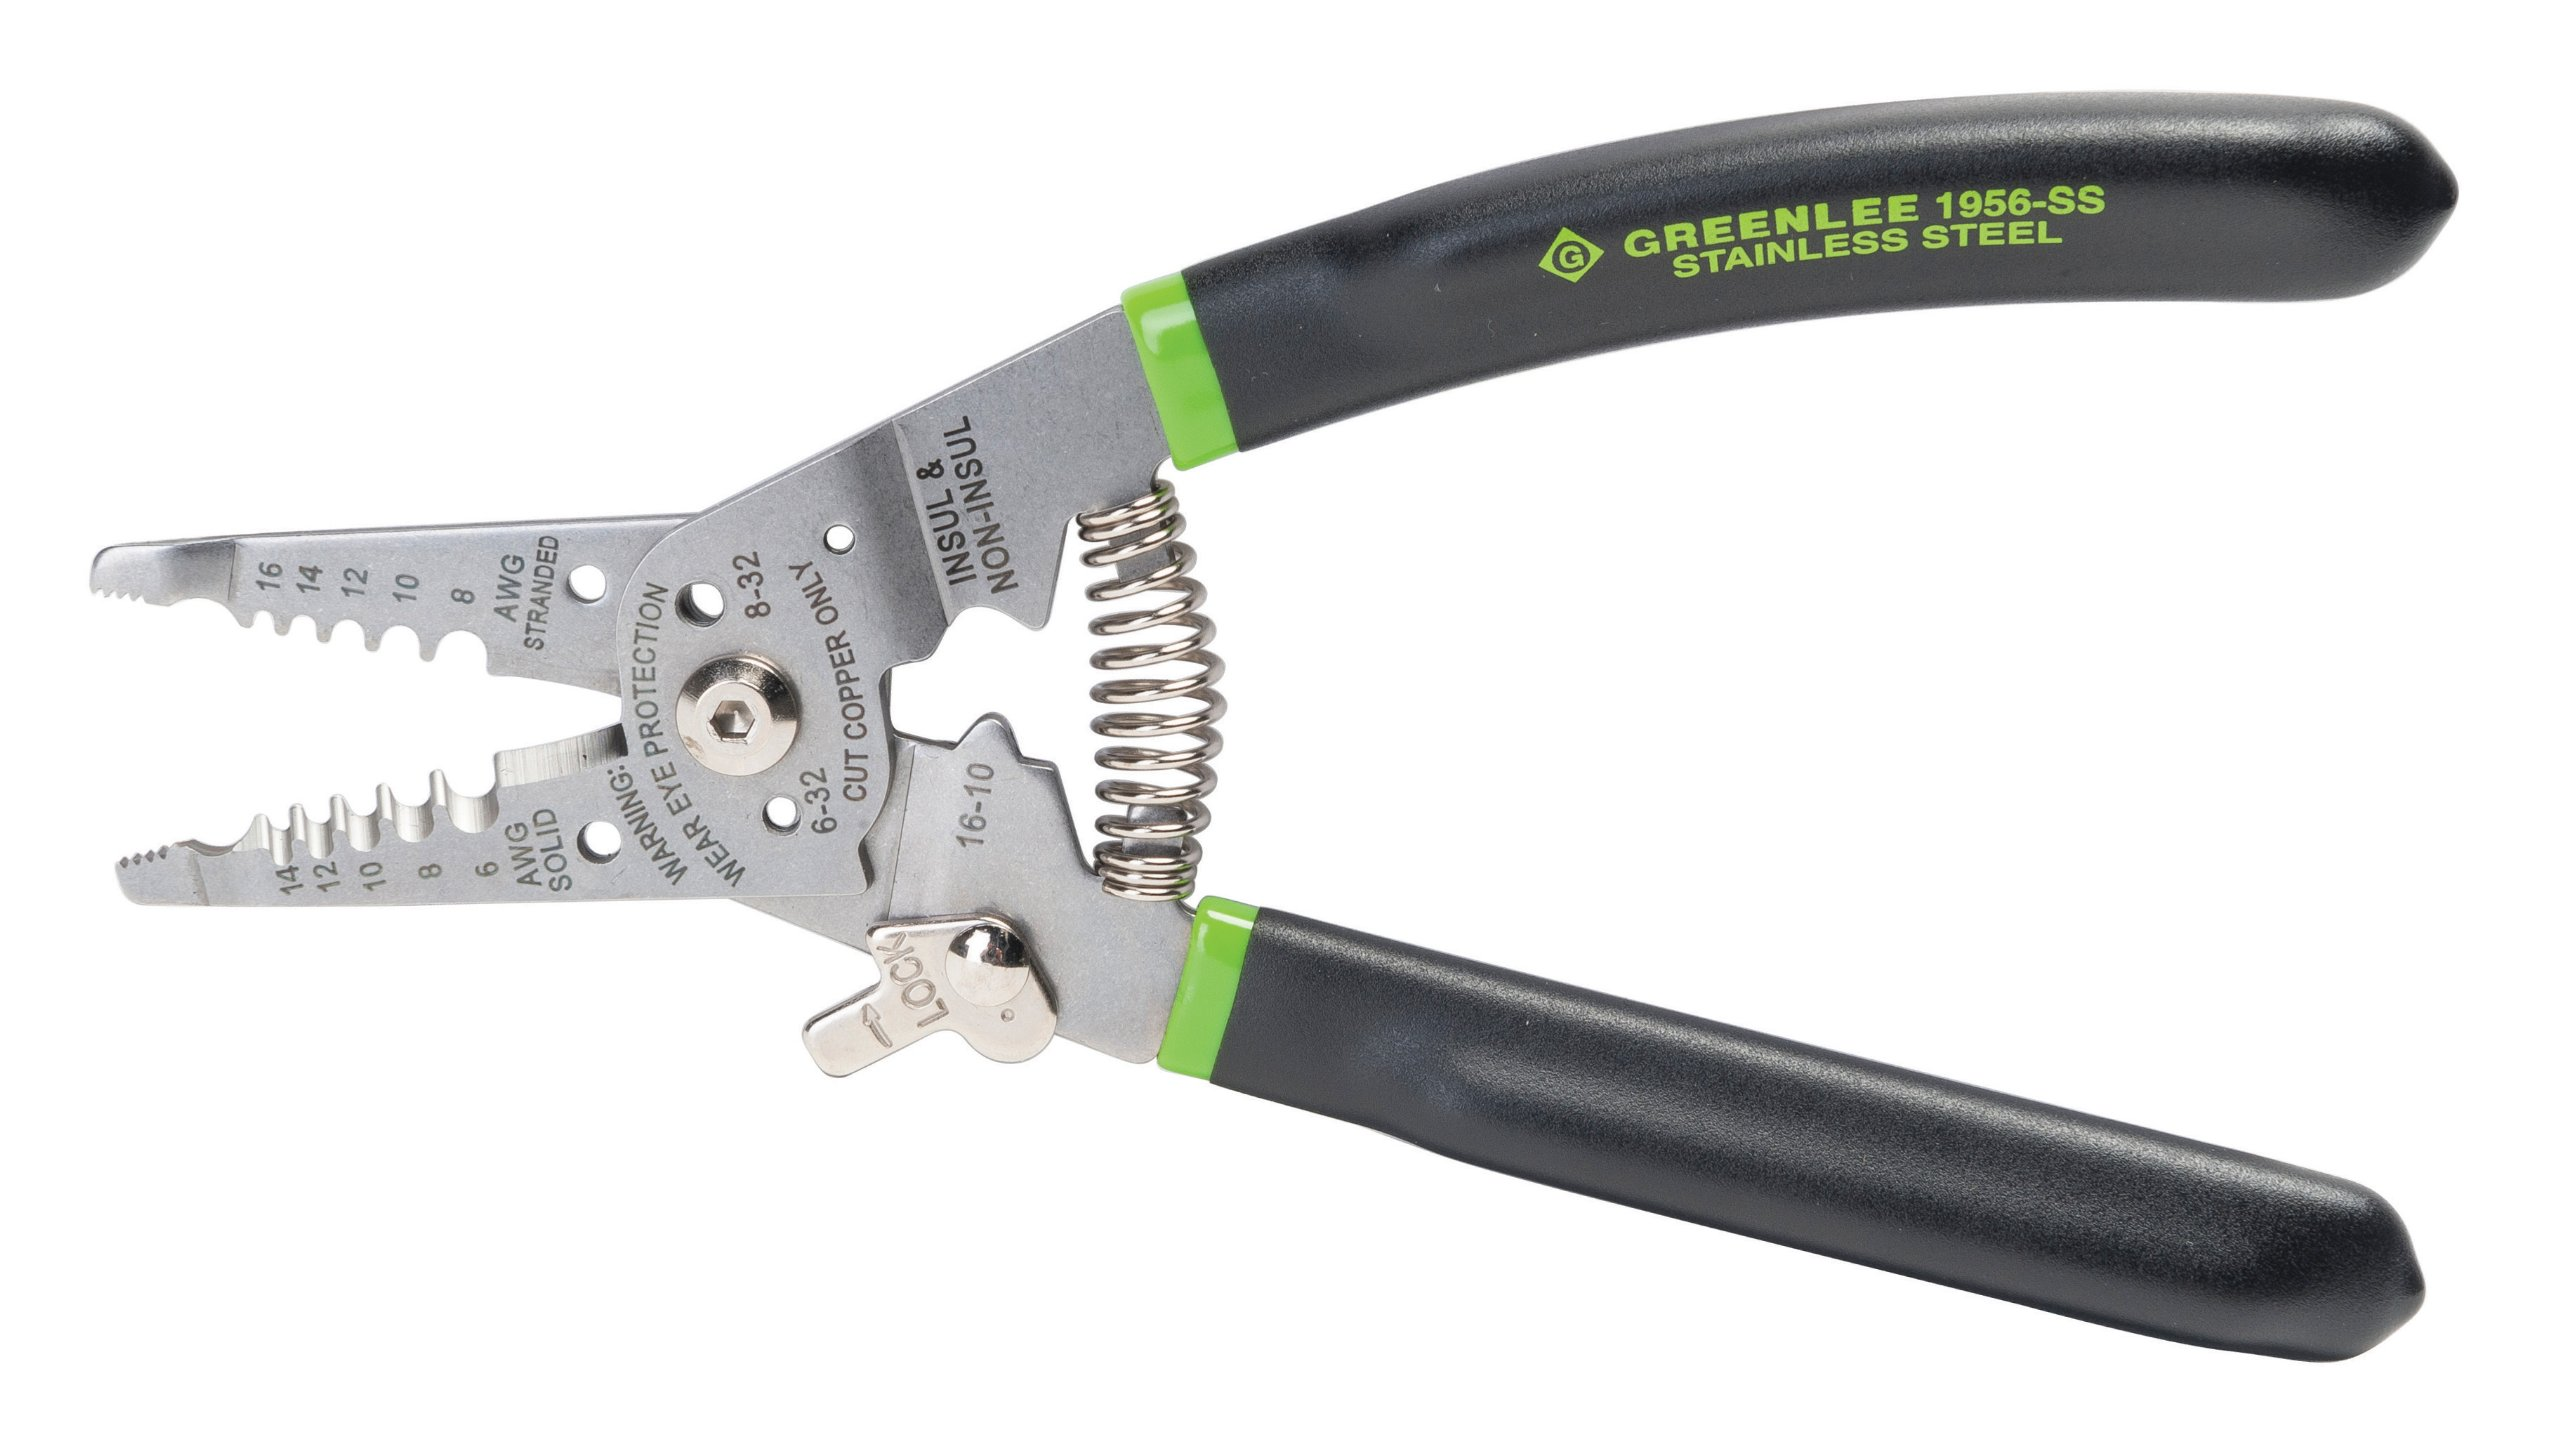 Greenlee 1956-SS Pro Stainless Wire Stripper, Cutter and Crimper Curve, 6-14AWG, 7.5-Inches